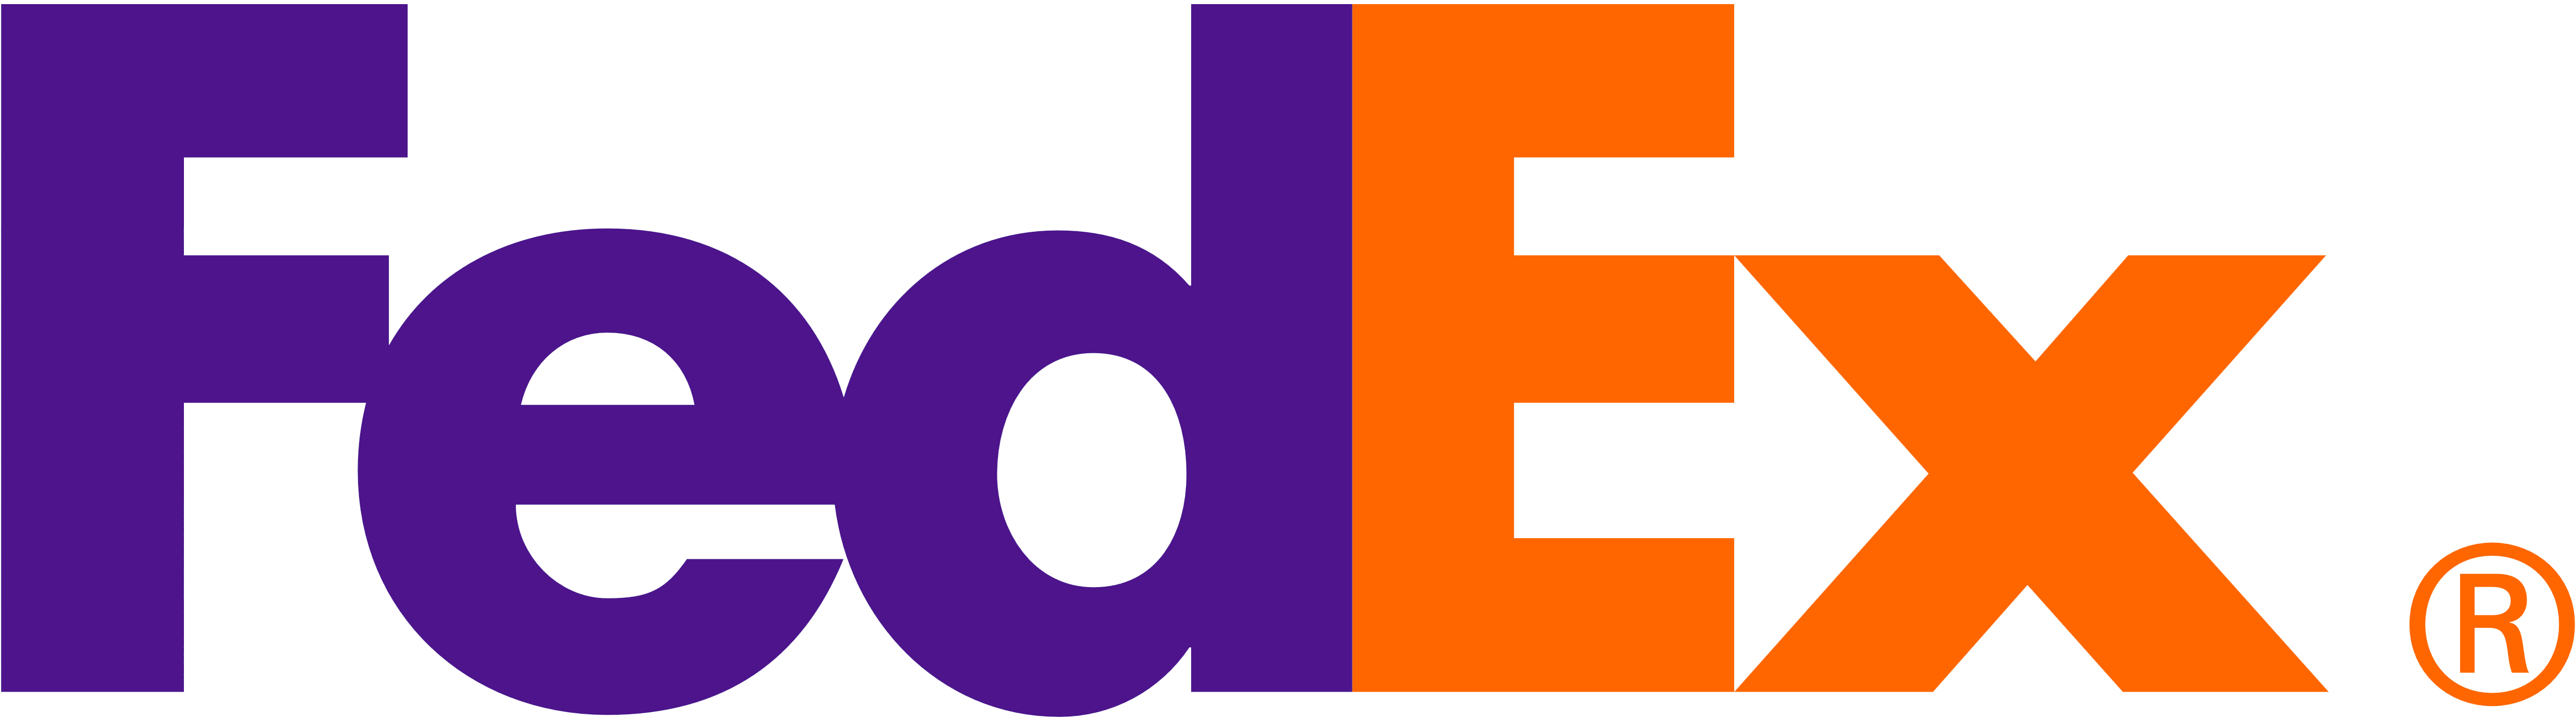 Image result for fedex logo purple